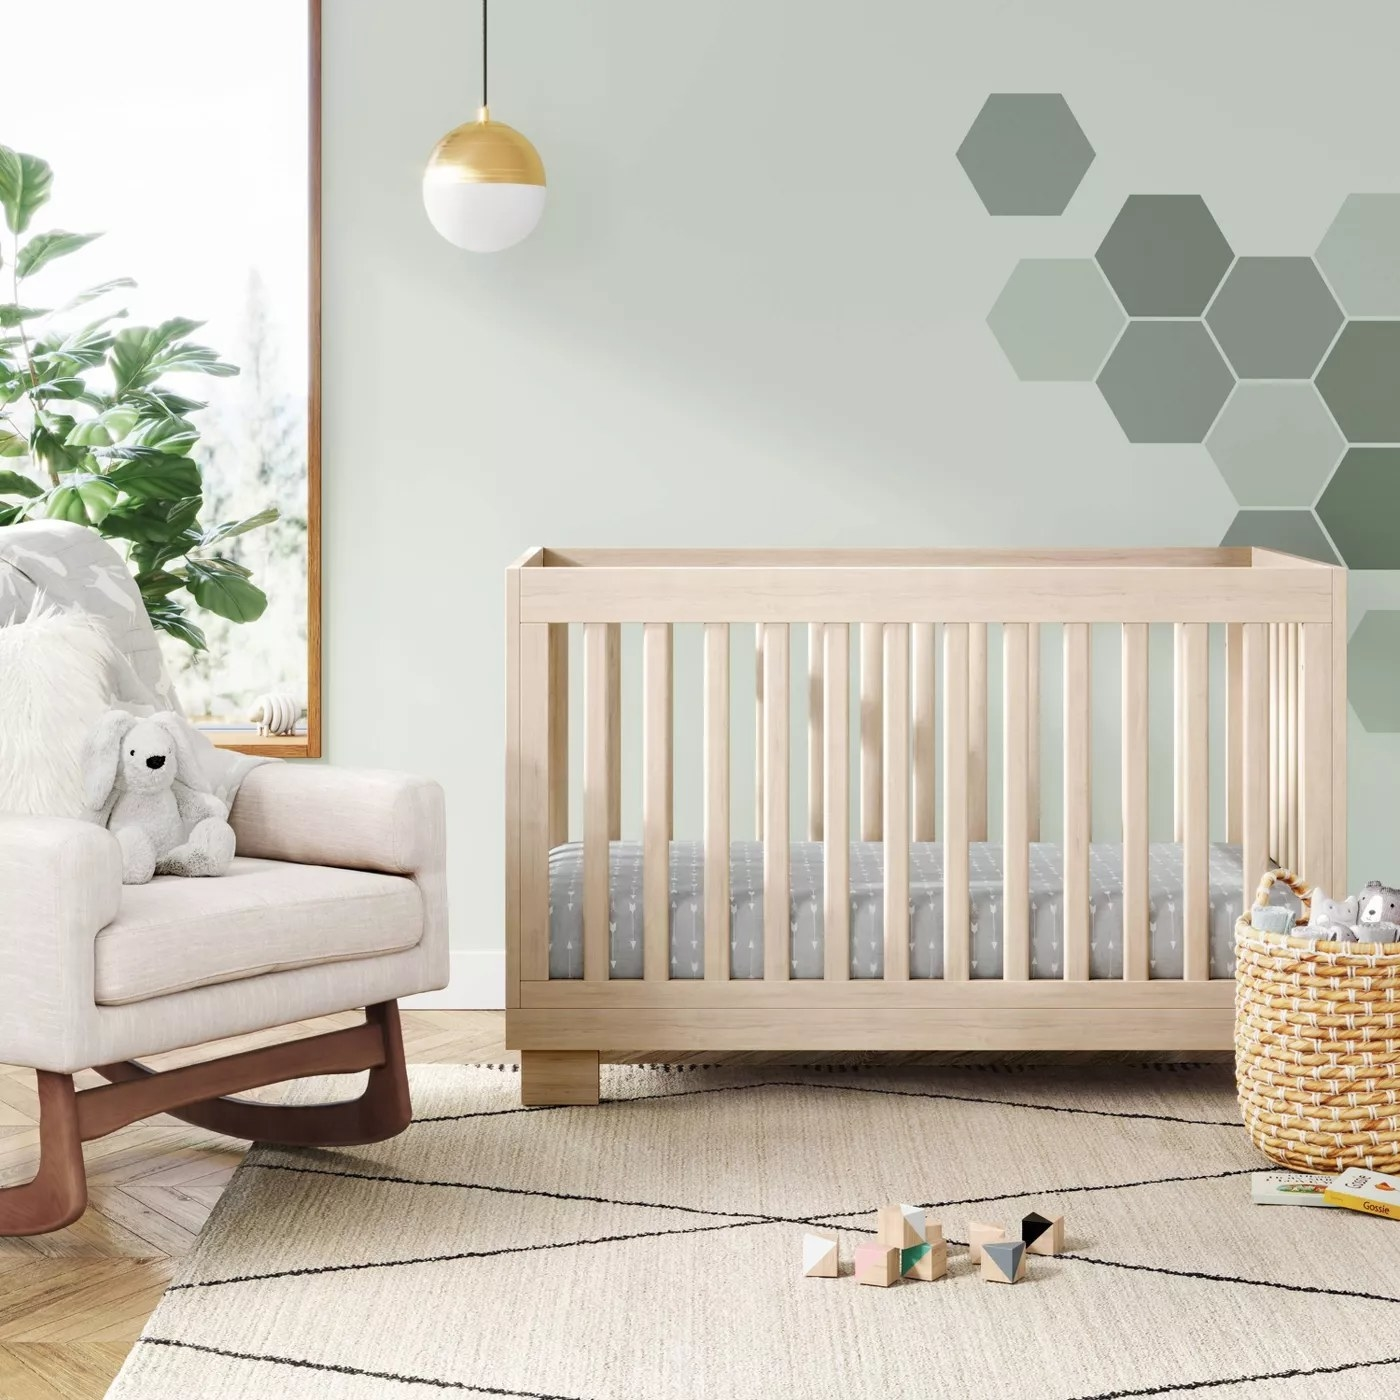 The natural wooden crib in a nursery